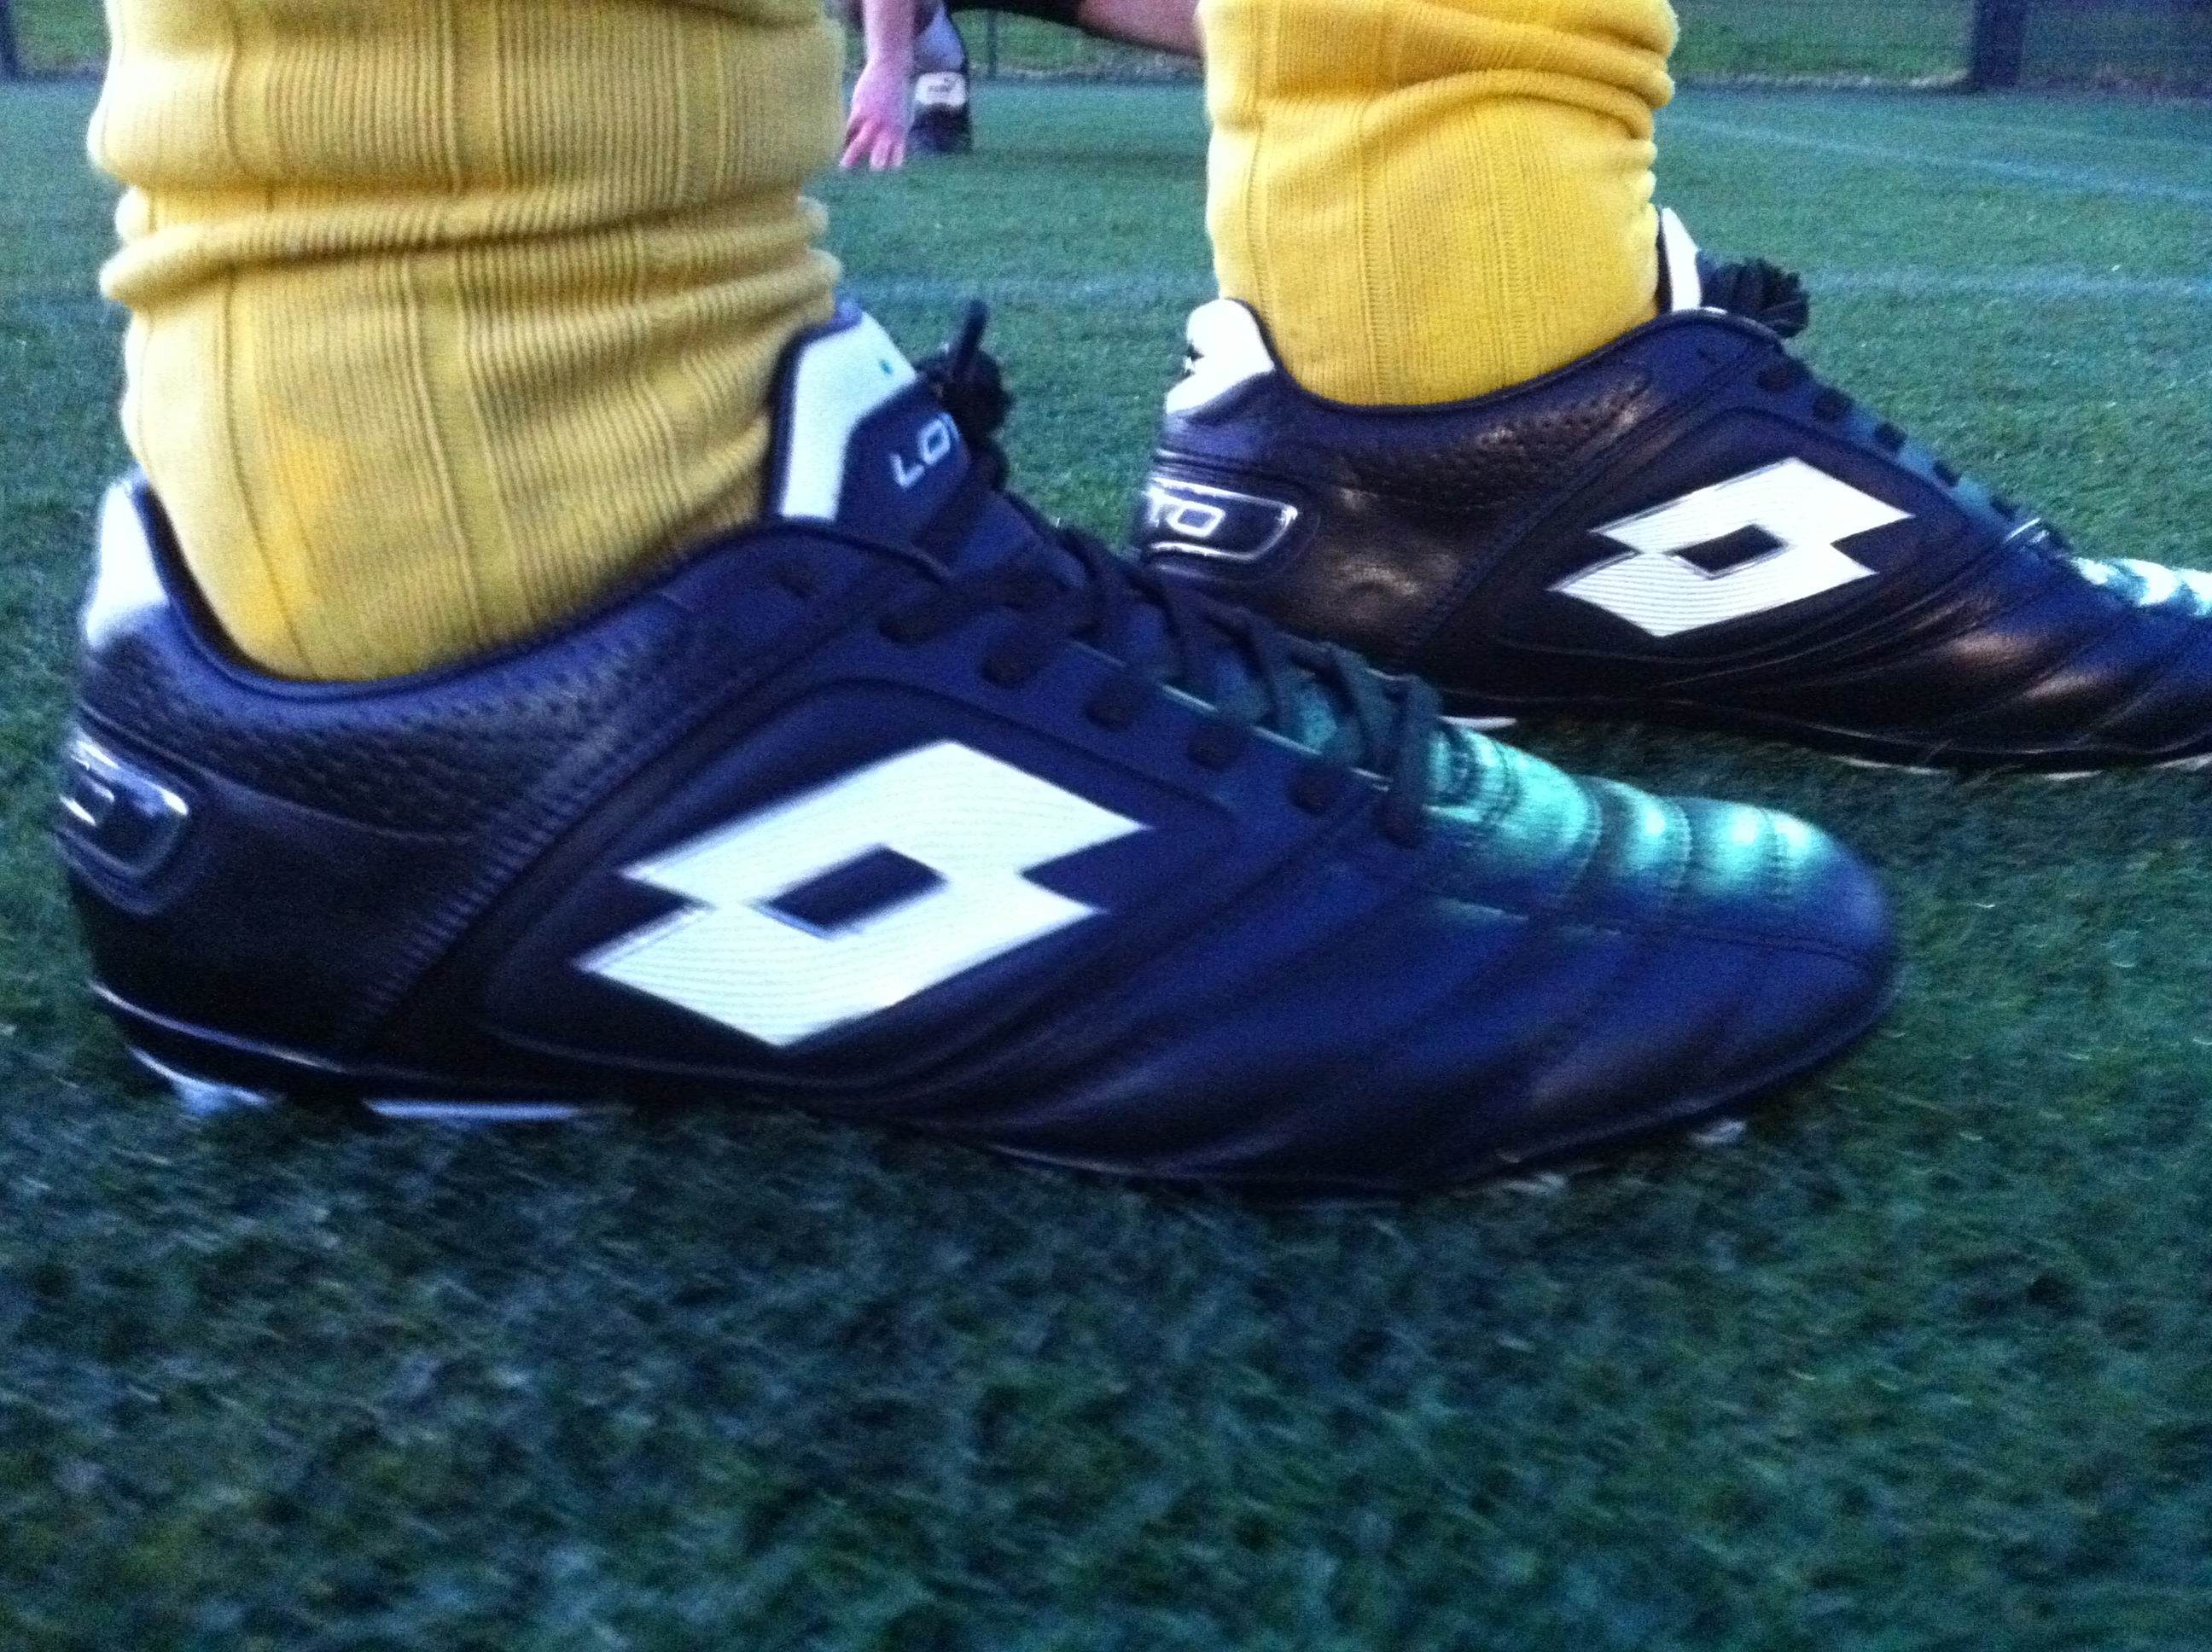 e9857af78a1216 Football boot play test review  Lotto Stadio Potenza – SportLocker